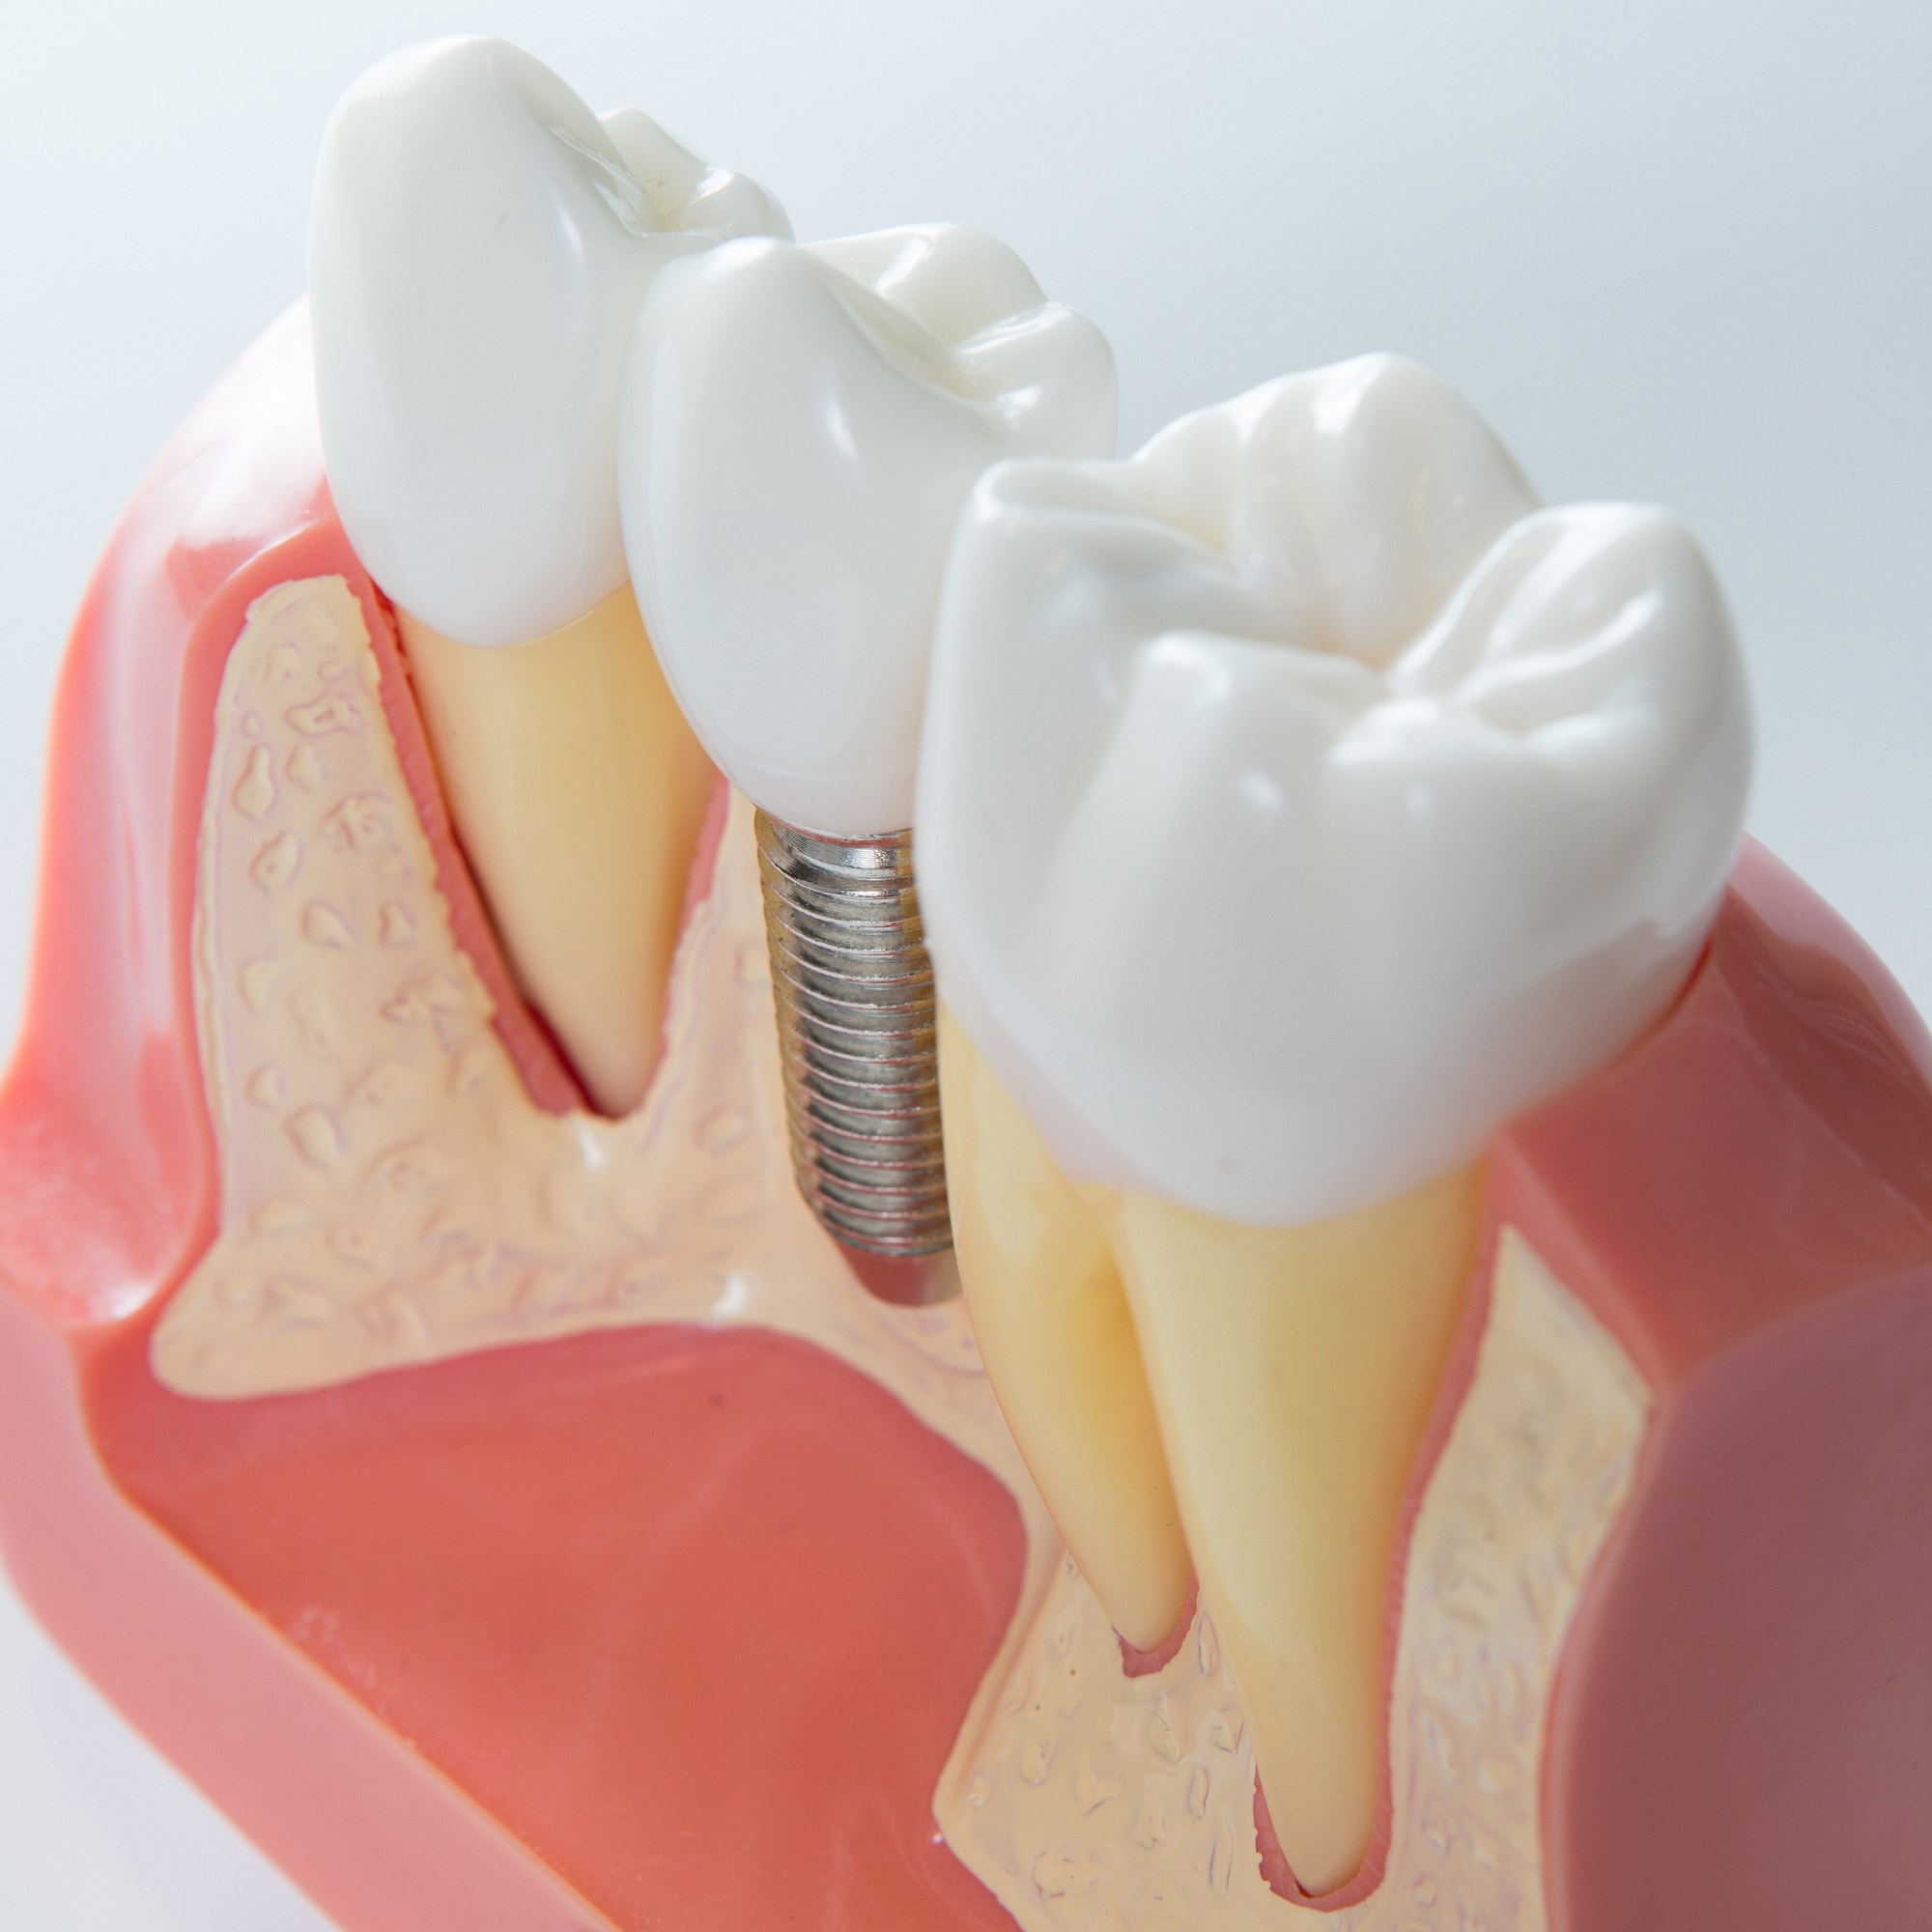 Components of a dental implant | Model of a dental implant